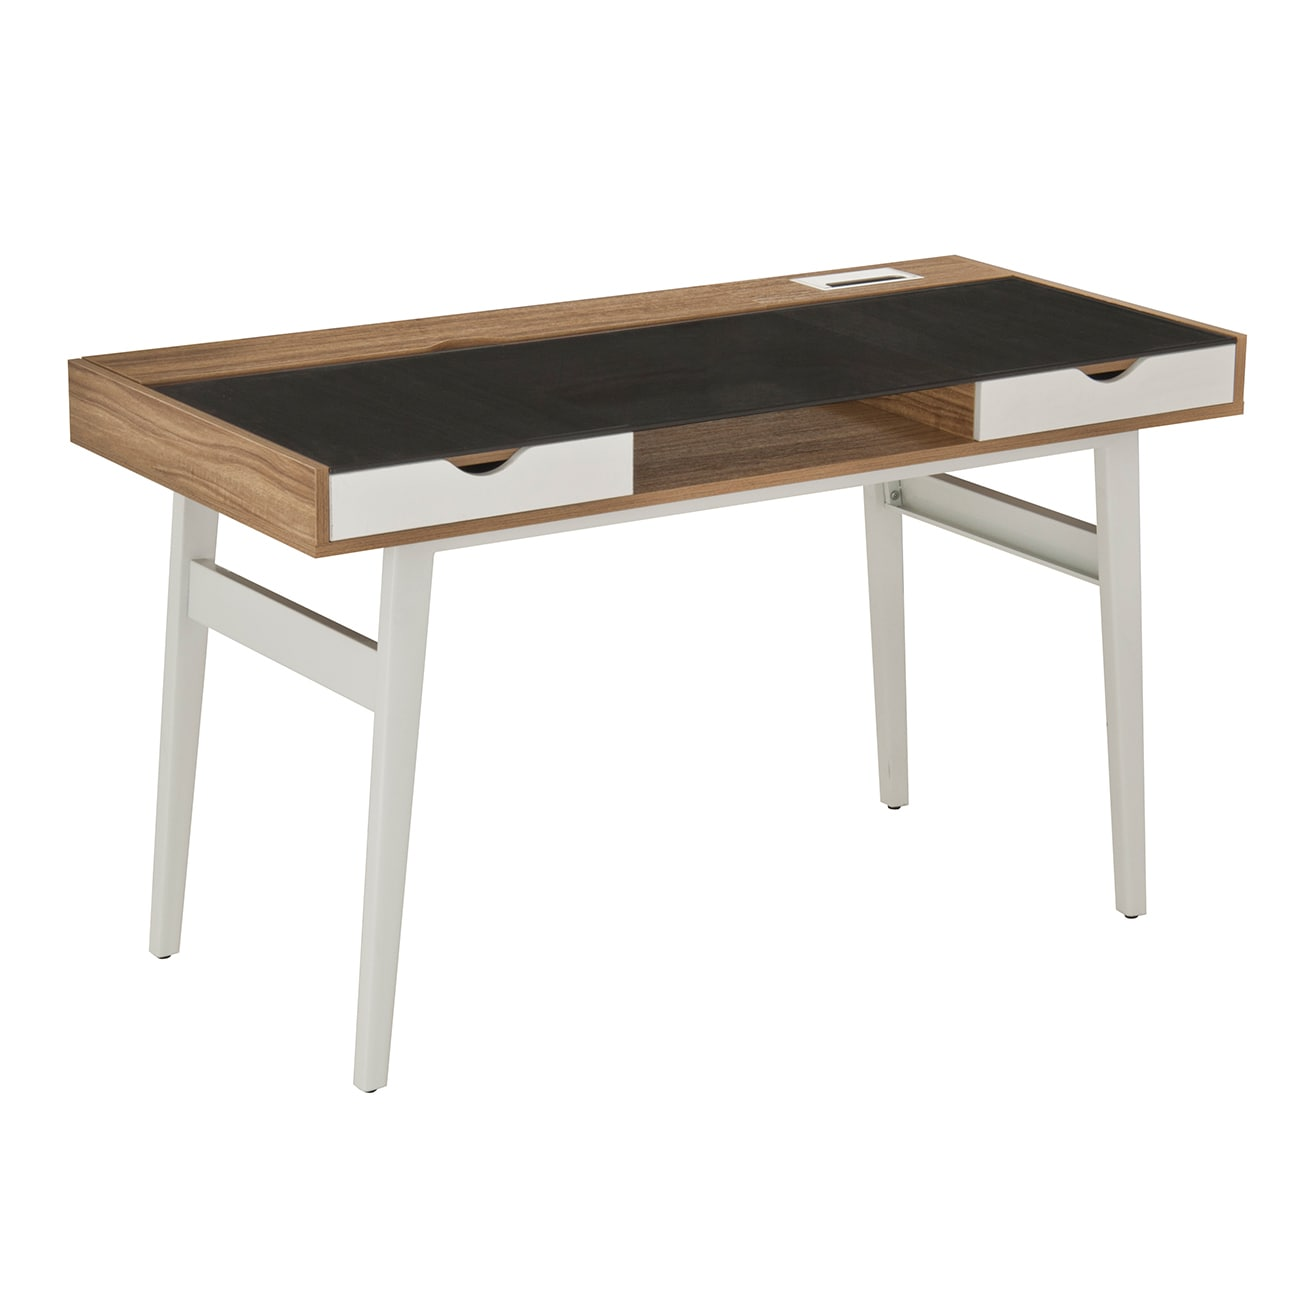 Shop mordern designs walnut compact computer desk with storage drawers free shipping today overstock com 12637286